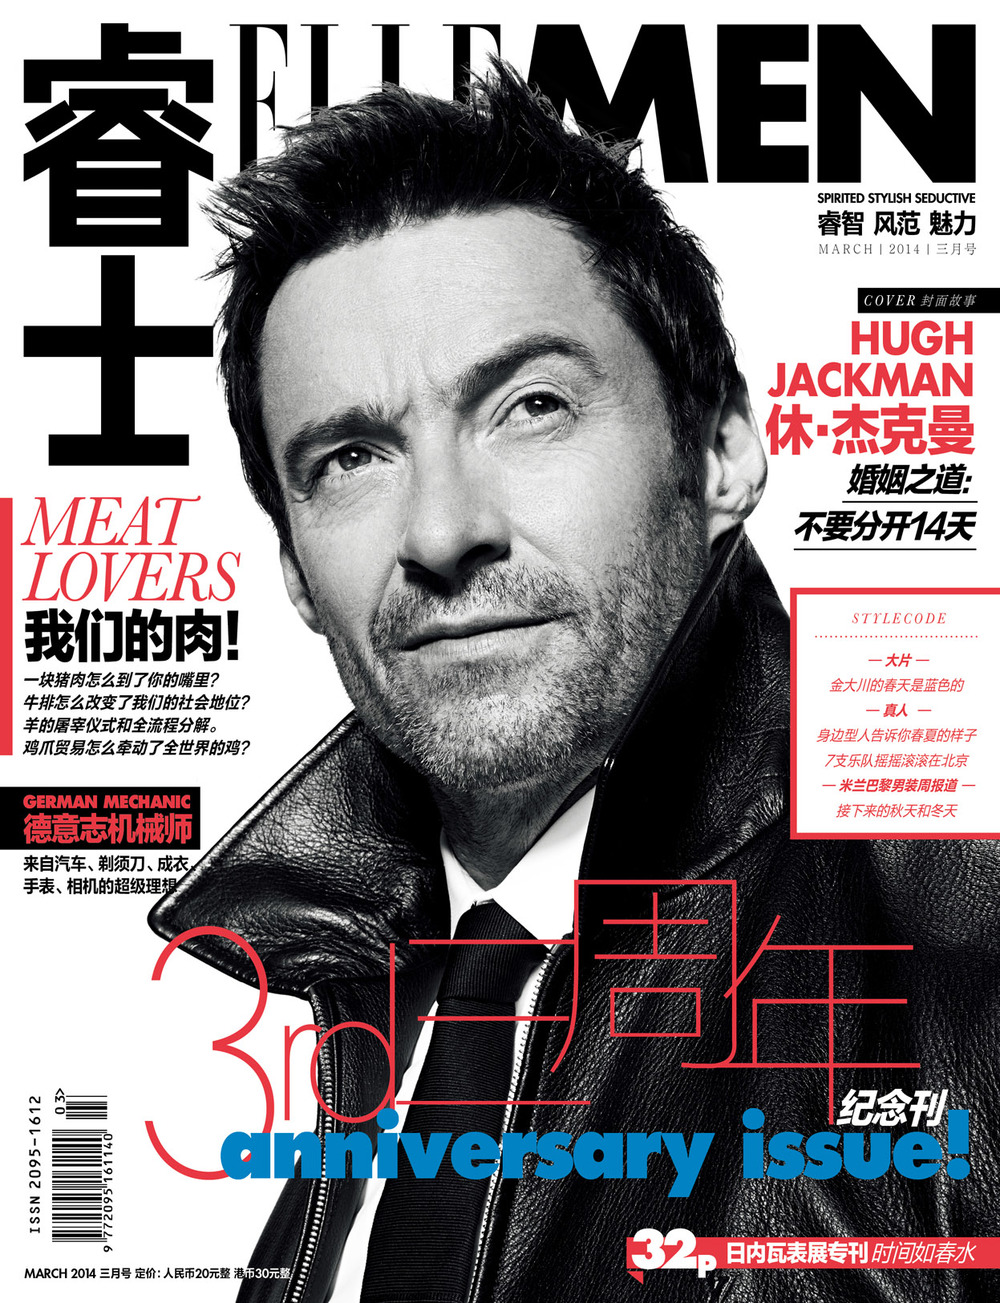 hugh jackman elle men china march 2014